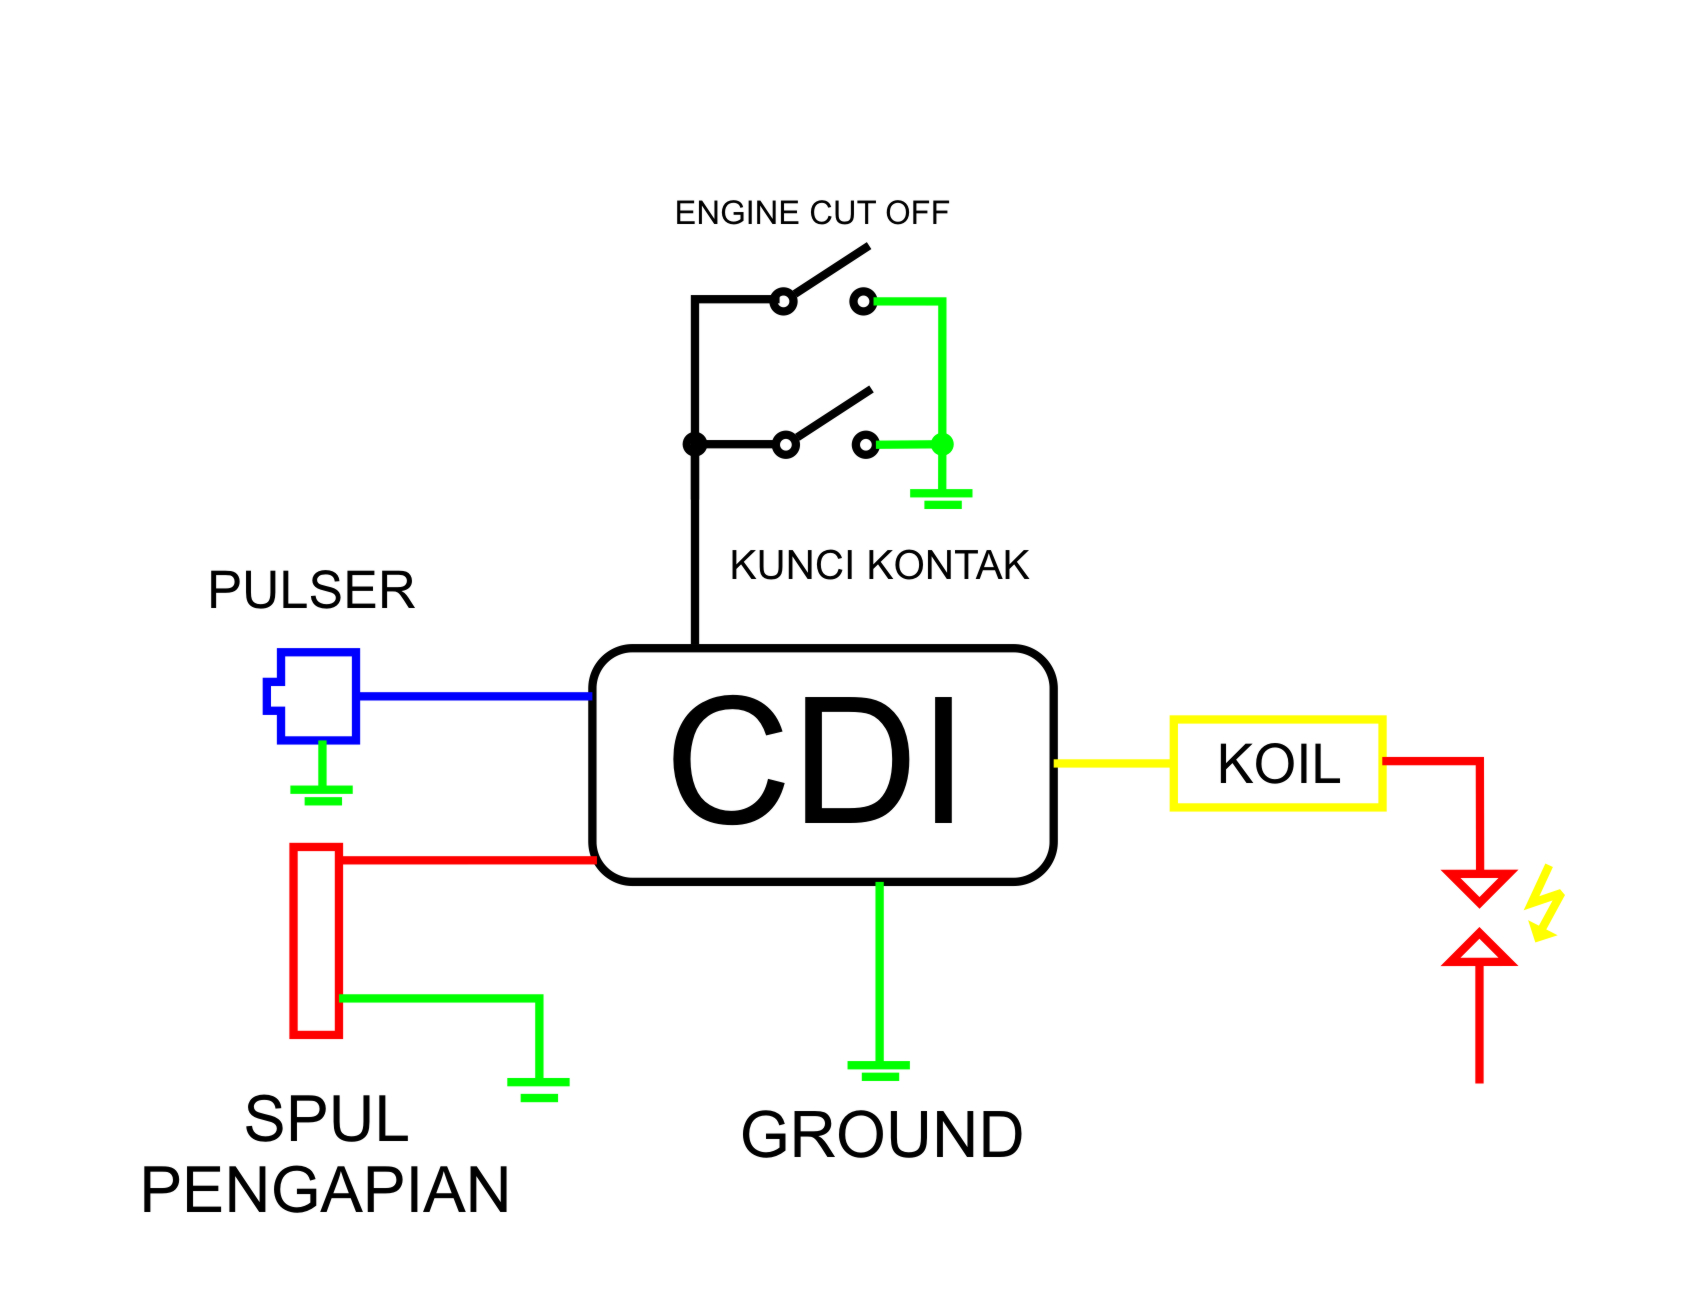 Wiring Diagram Kunci Kontak Rx King